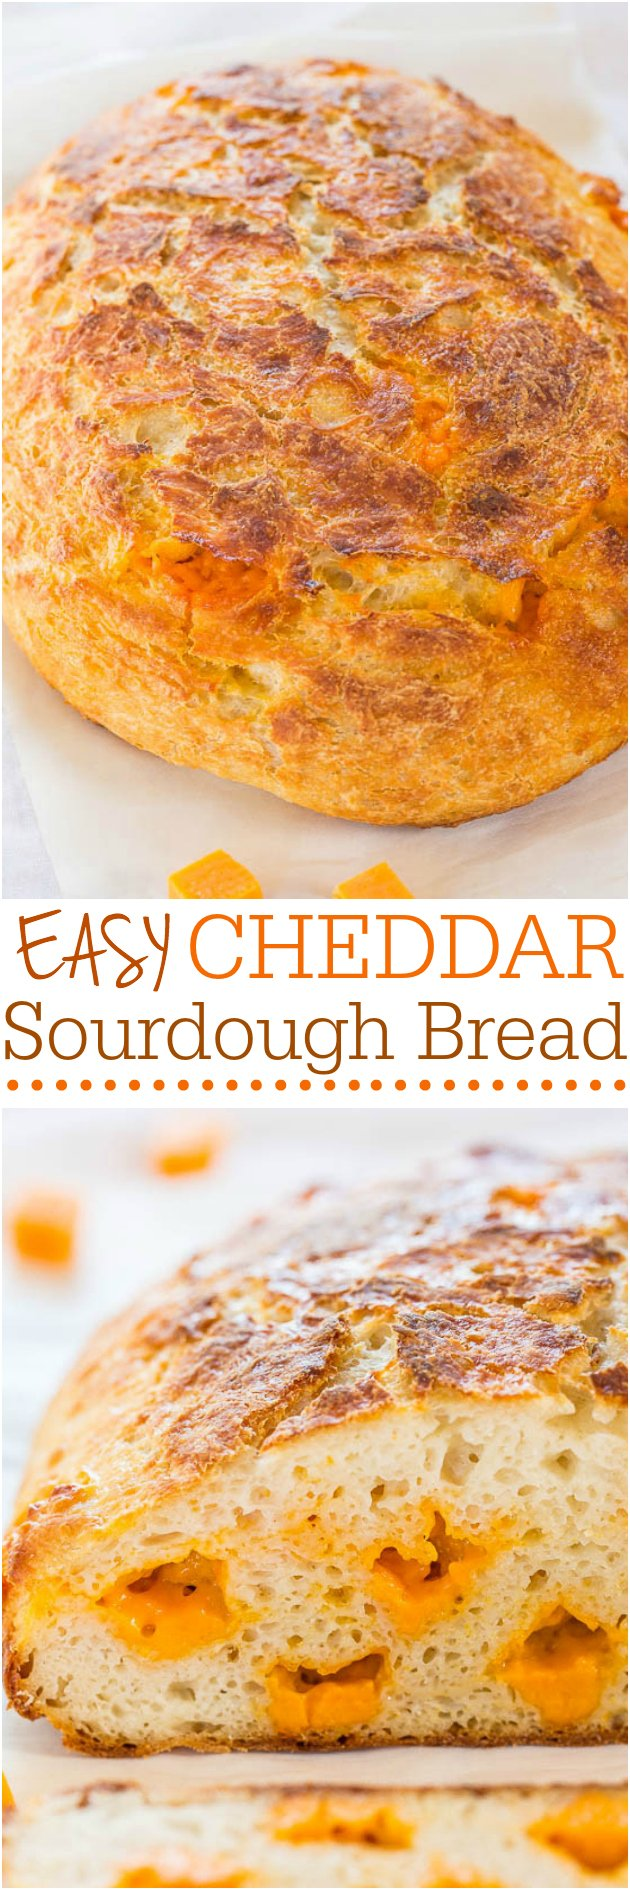 Homemade Sourdough Cheese Bread — No starter required and so easy! It tastes like it's from a fancy bakery! Who can resist homemade cheesy bread?!